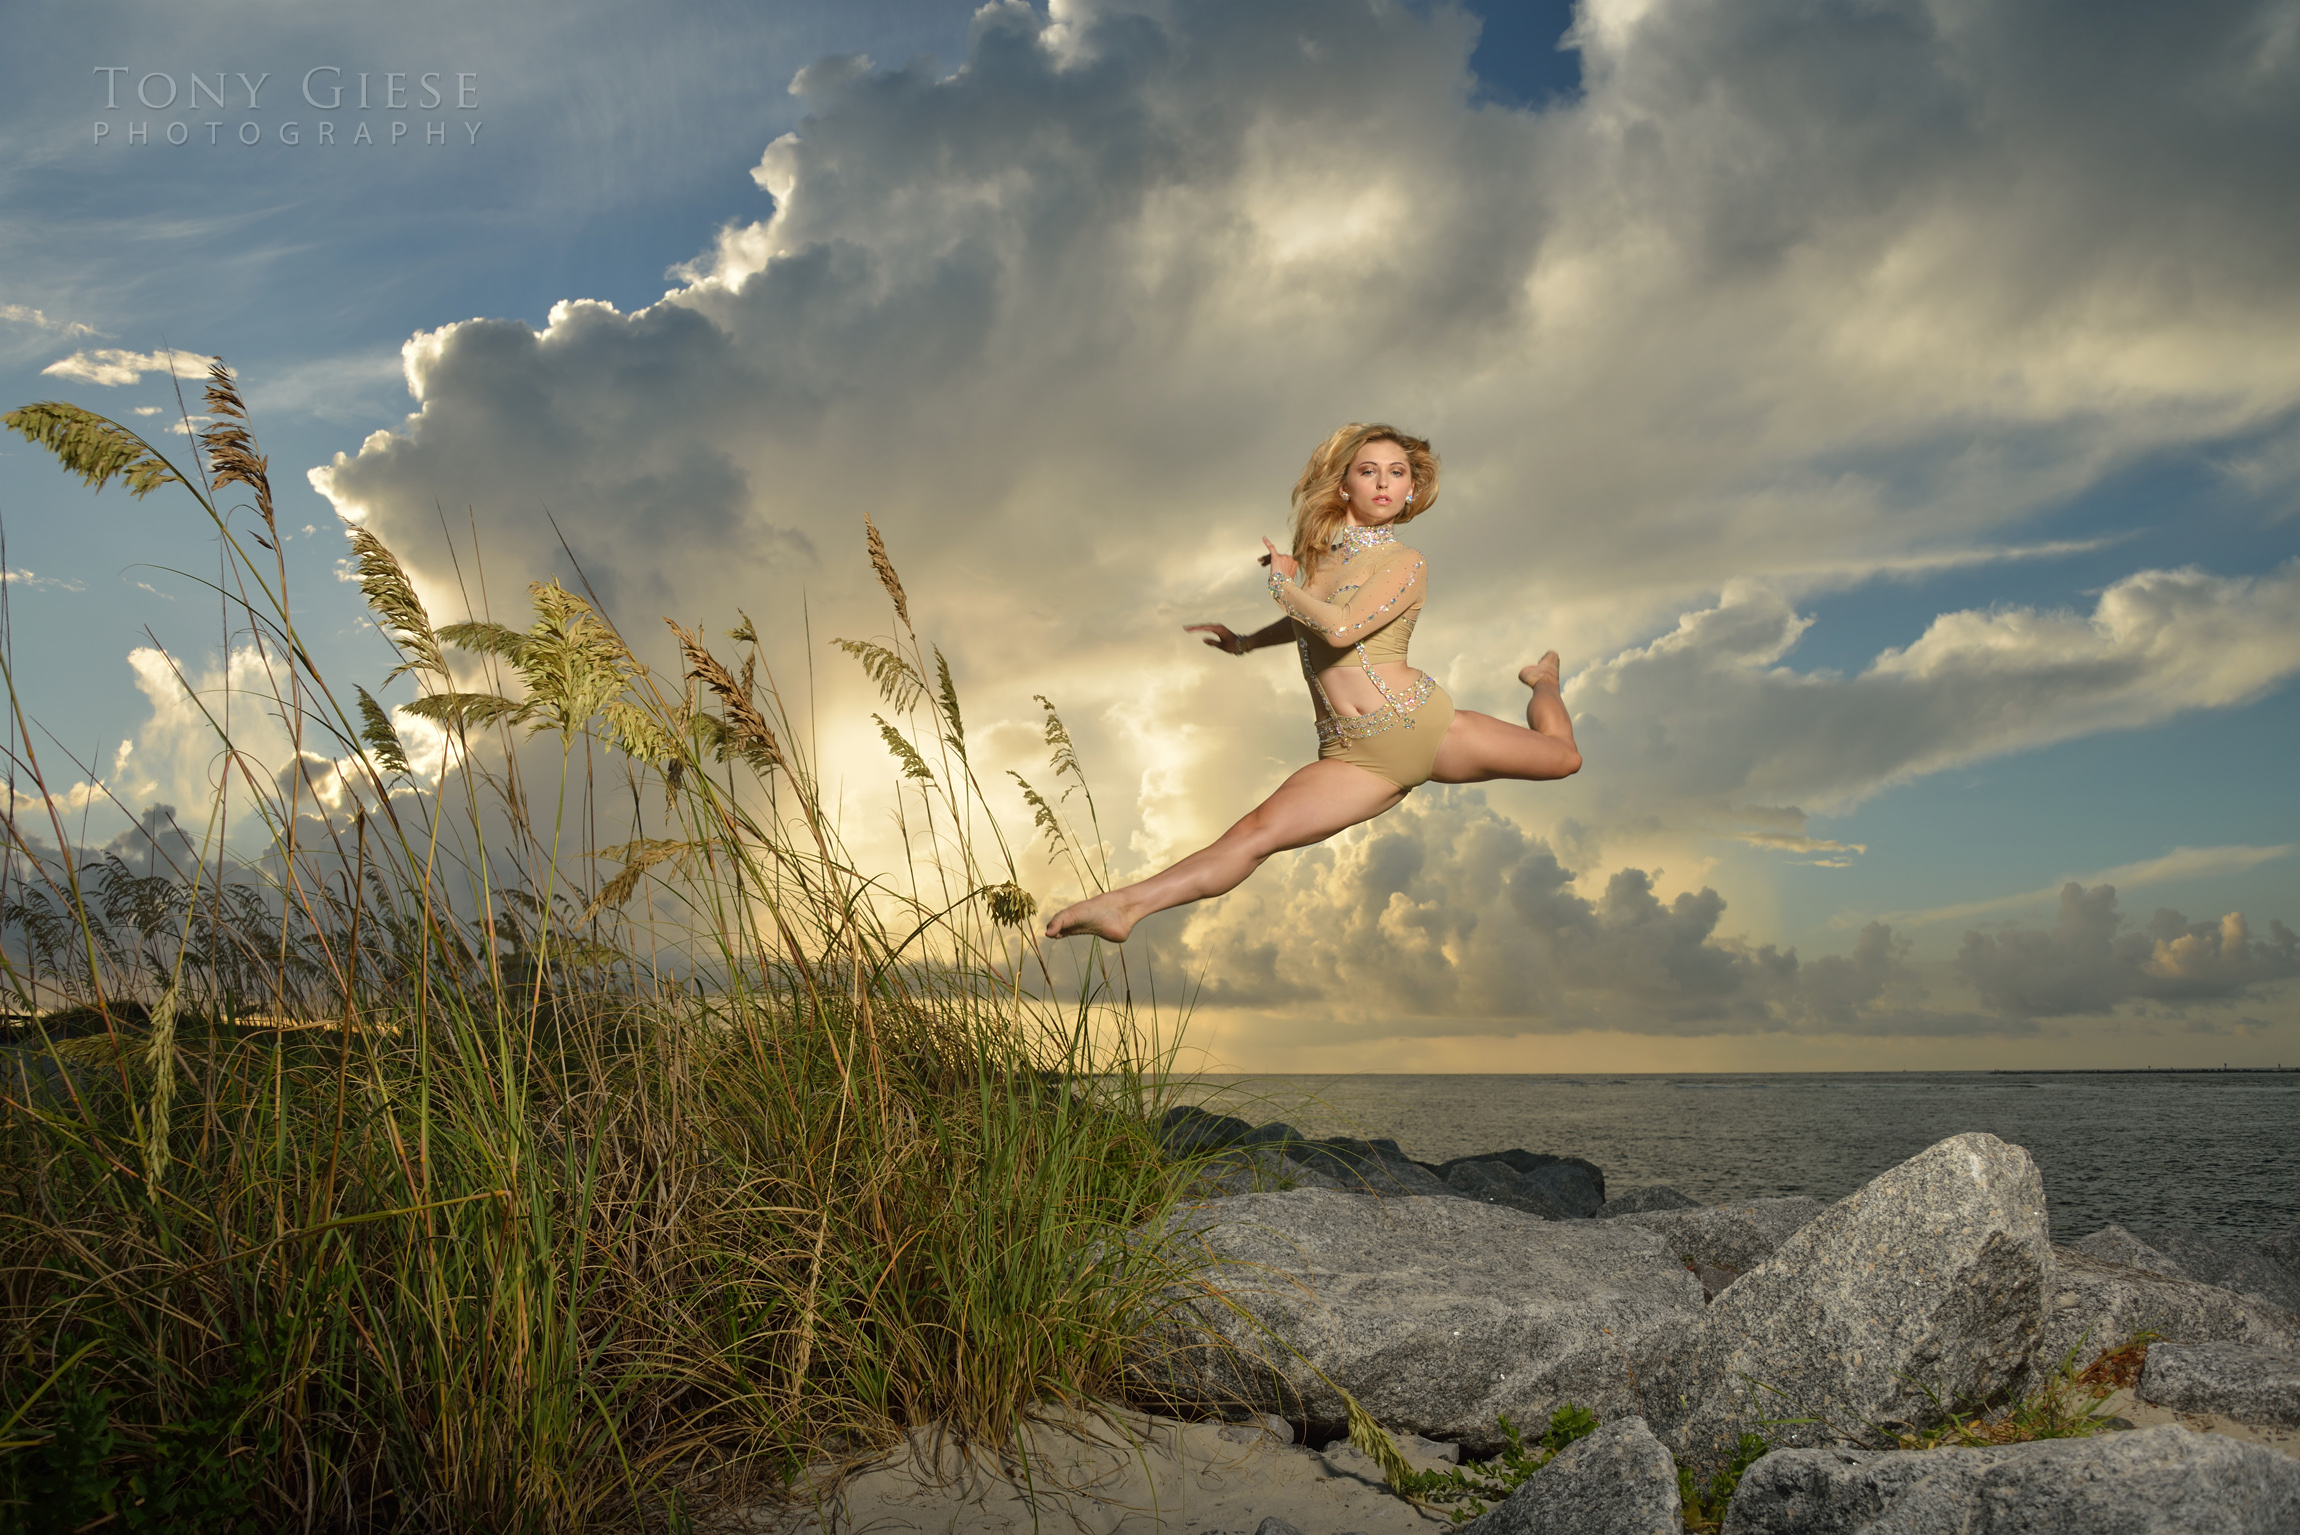 Tallee dancing move of jumping rocks on ocean, Ponce Inlet, Florida. Photography by Tony Giese